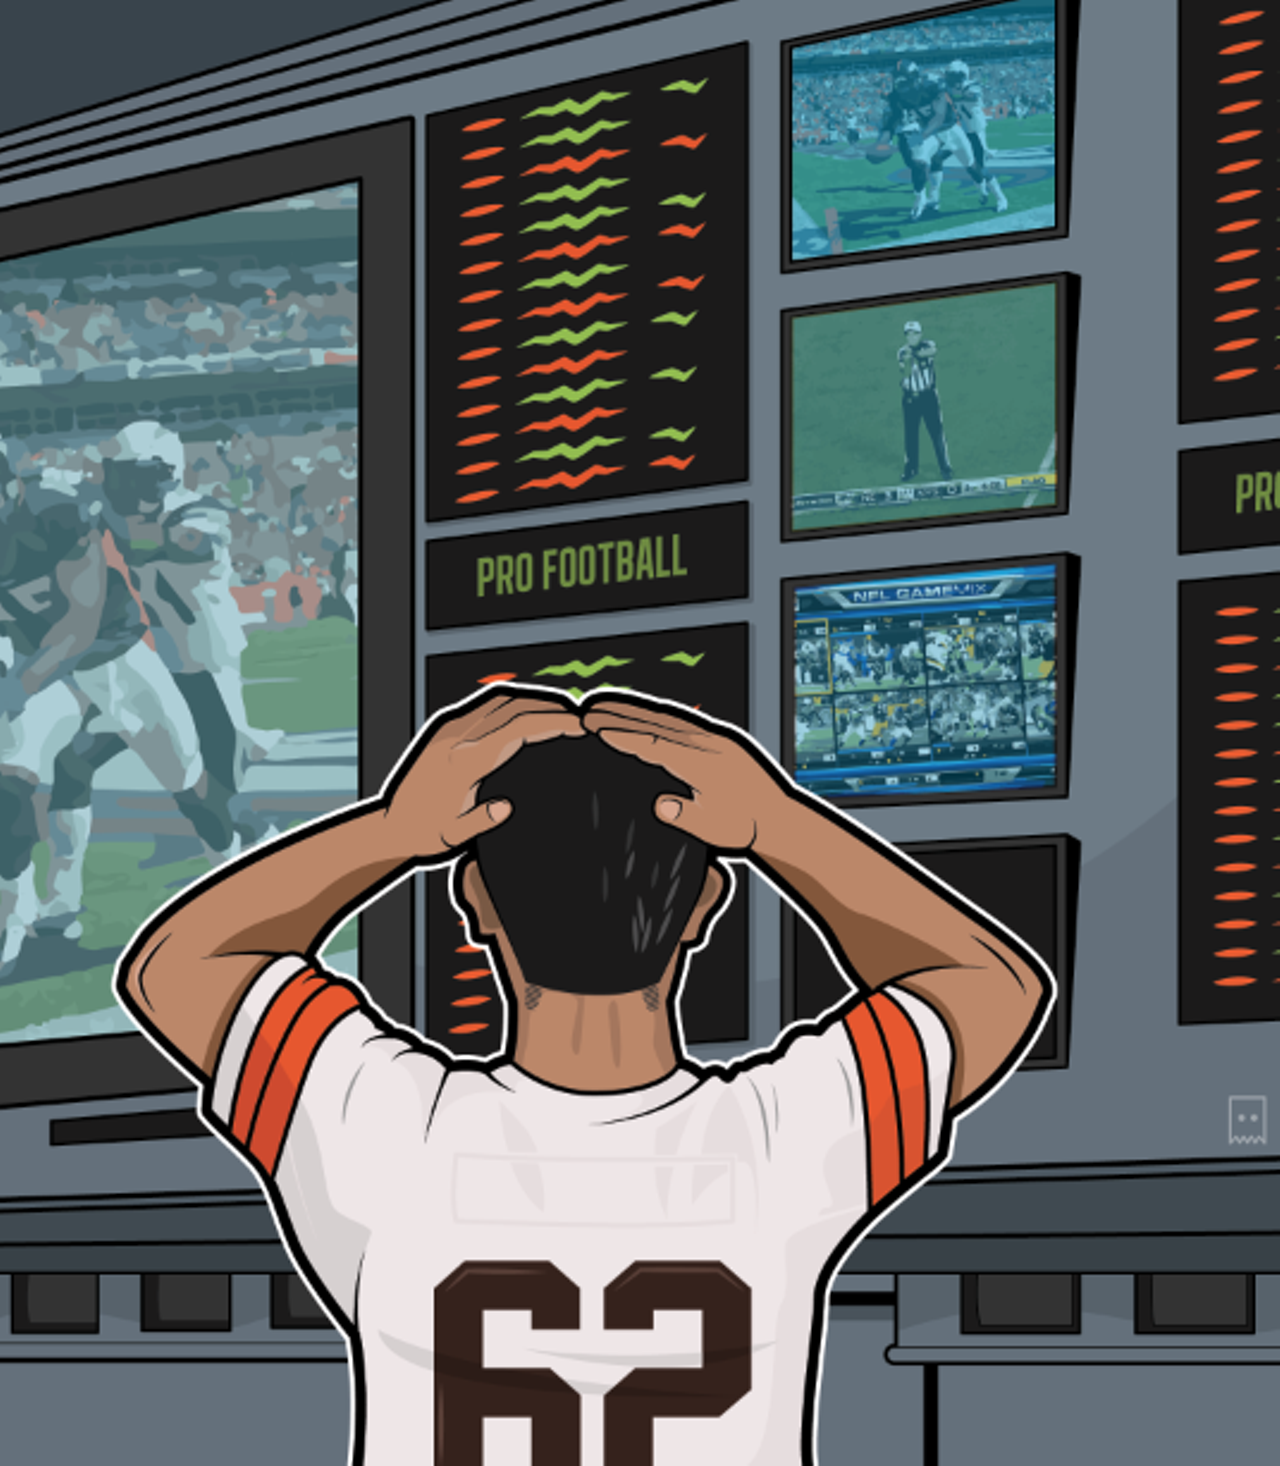 obsessed with professional sports betting